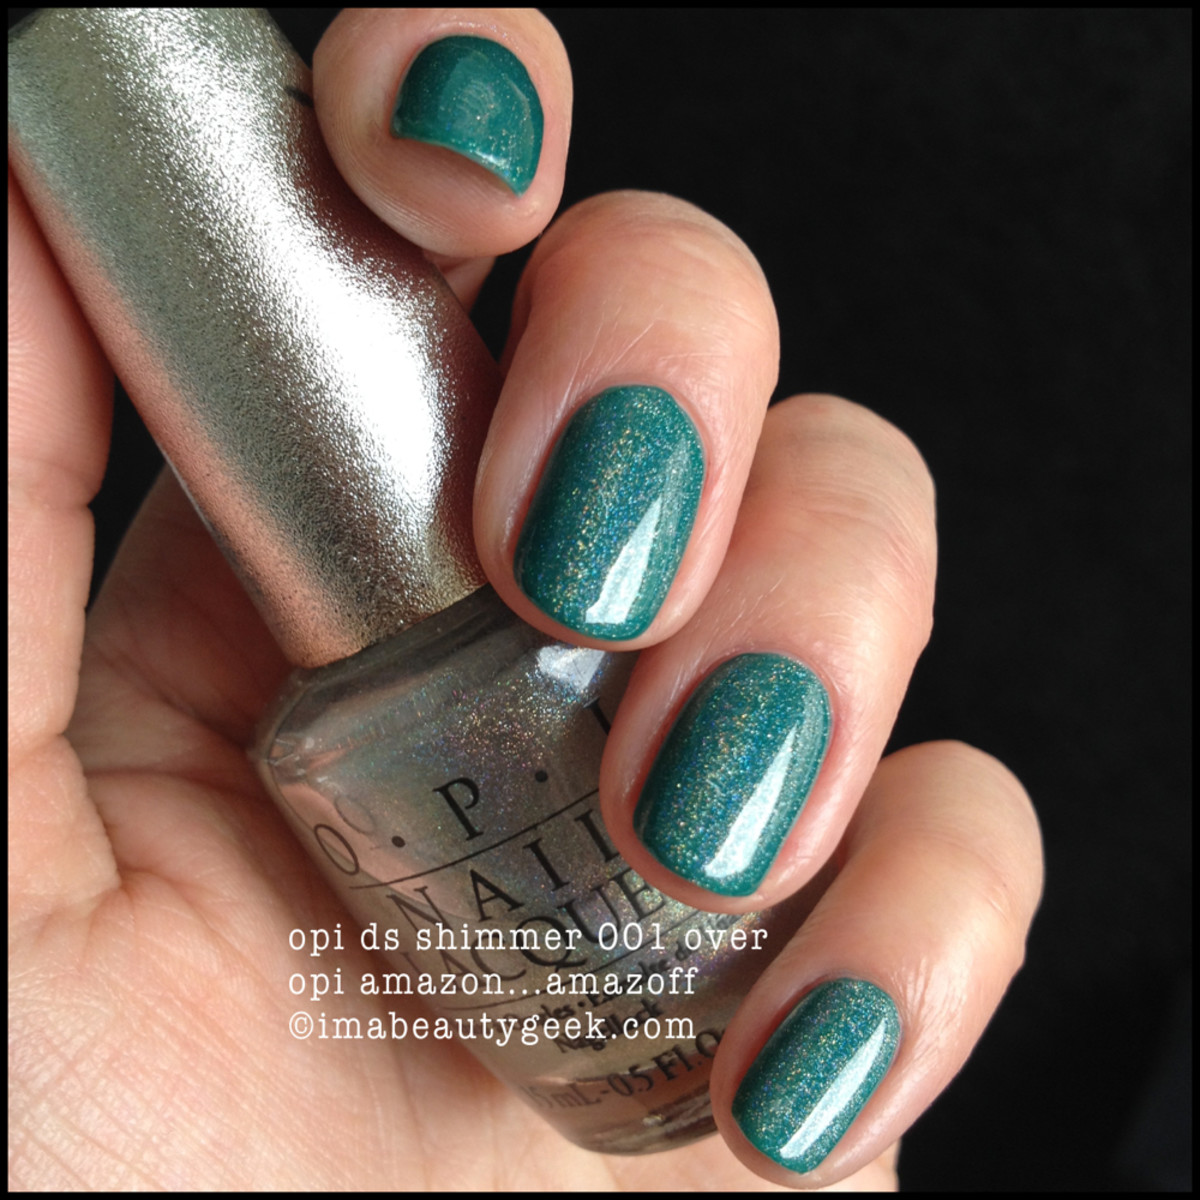 OPI Shimmer DS 001 over Amazon Amazoff